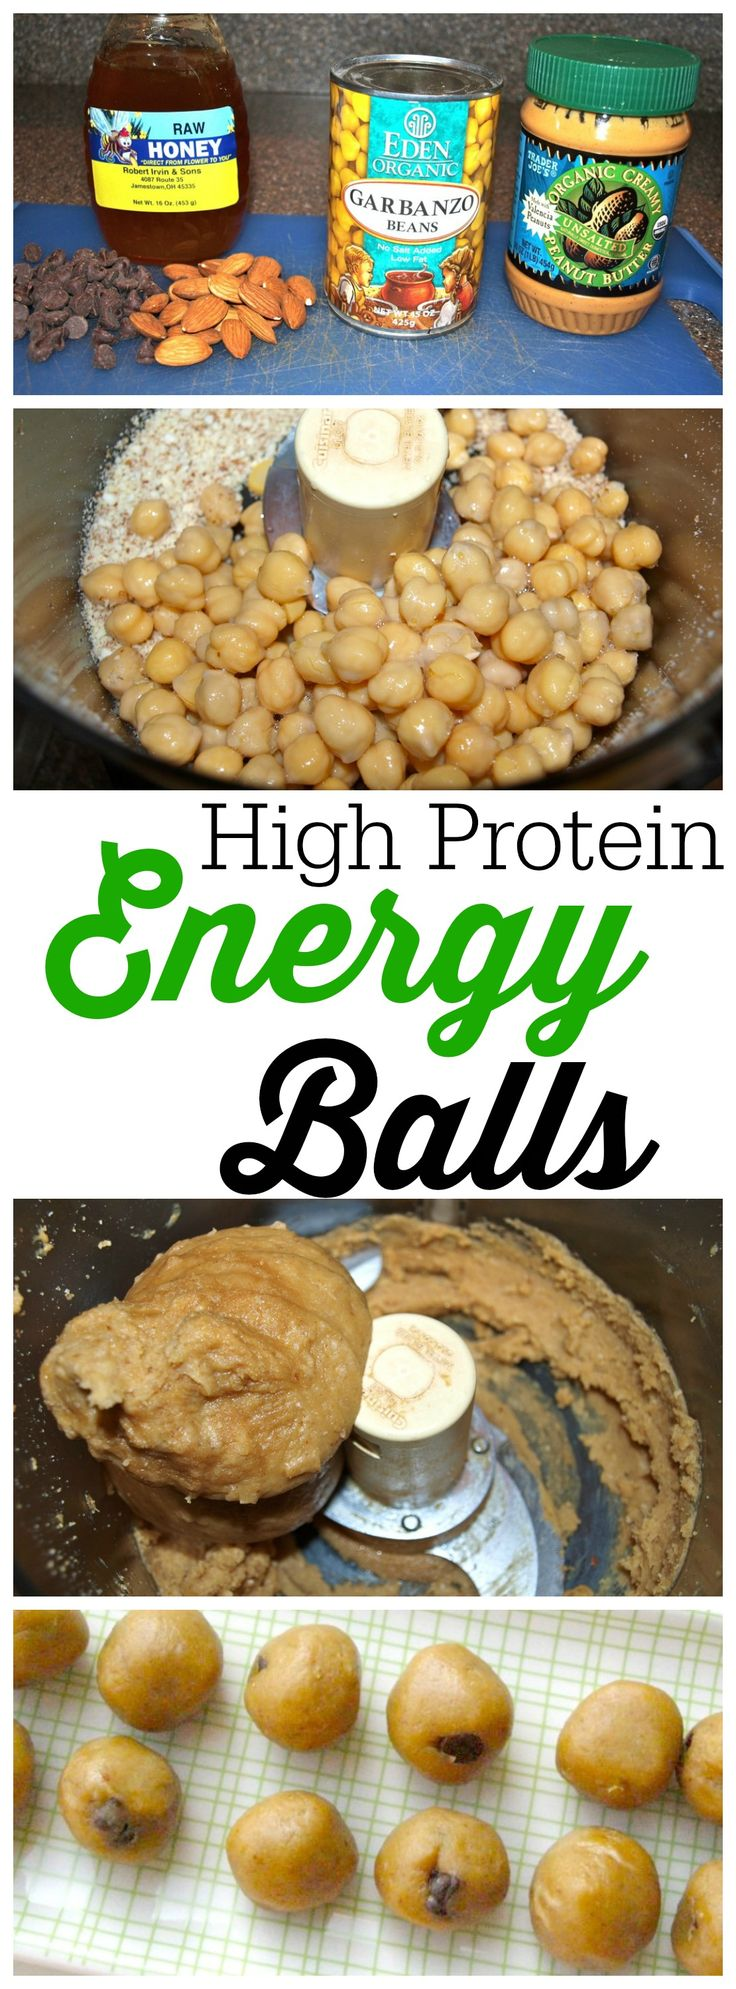 """Here's what one commenter said about these High Protein Energy Balls:  """"I just had to tell you how much my family & I love this recipe! I've made it at least a dozen times and they just seem to get better tasting each time. My picky 17-year-old daughter loves them, and I just gave them to my 7-year-old niece last week for breakfast. She loved them so much she asked me to make her a batch to keep at her house. I took them over to her today, and my sister-in-law just called for the recipe. ..."""